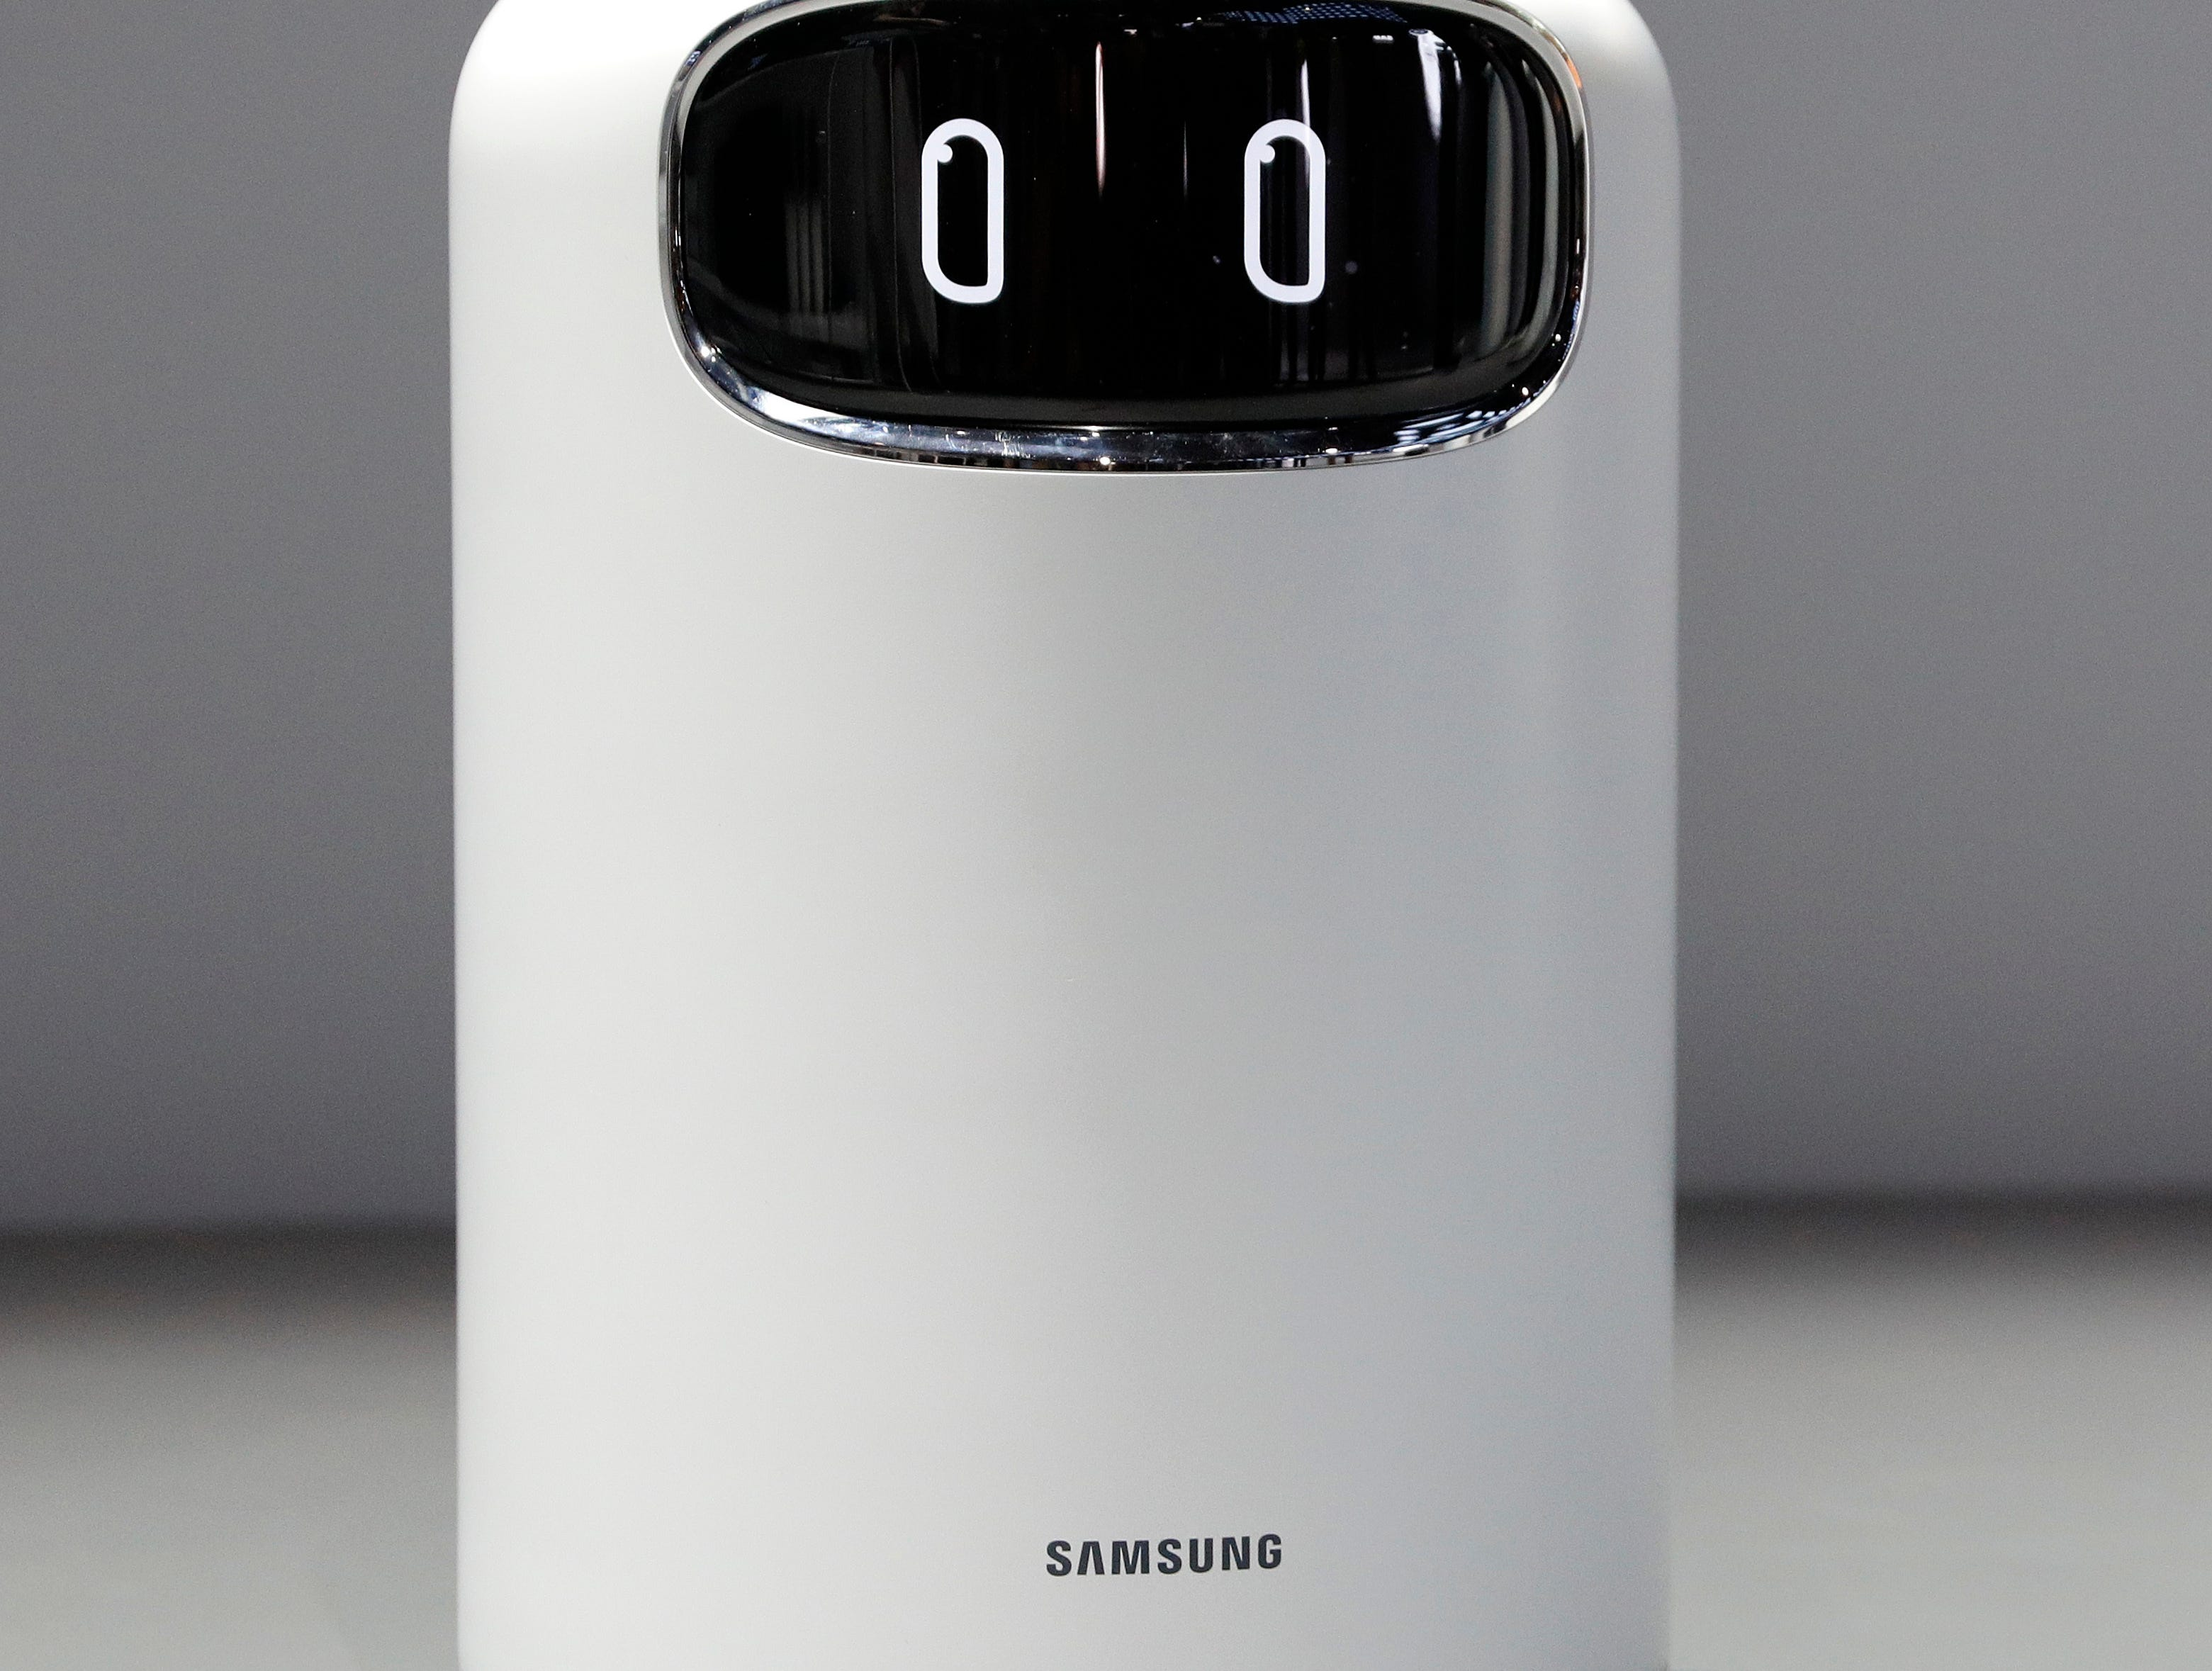 The Bot Air air filtering robot is displayed in the Samsung booth at CES International on Tuesday, Jan. 8, 2019, in Las Vegas.